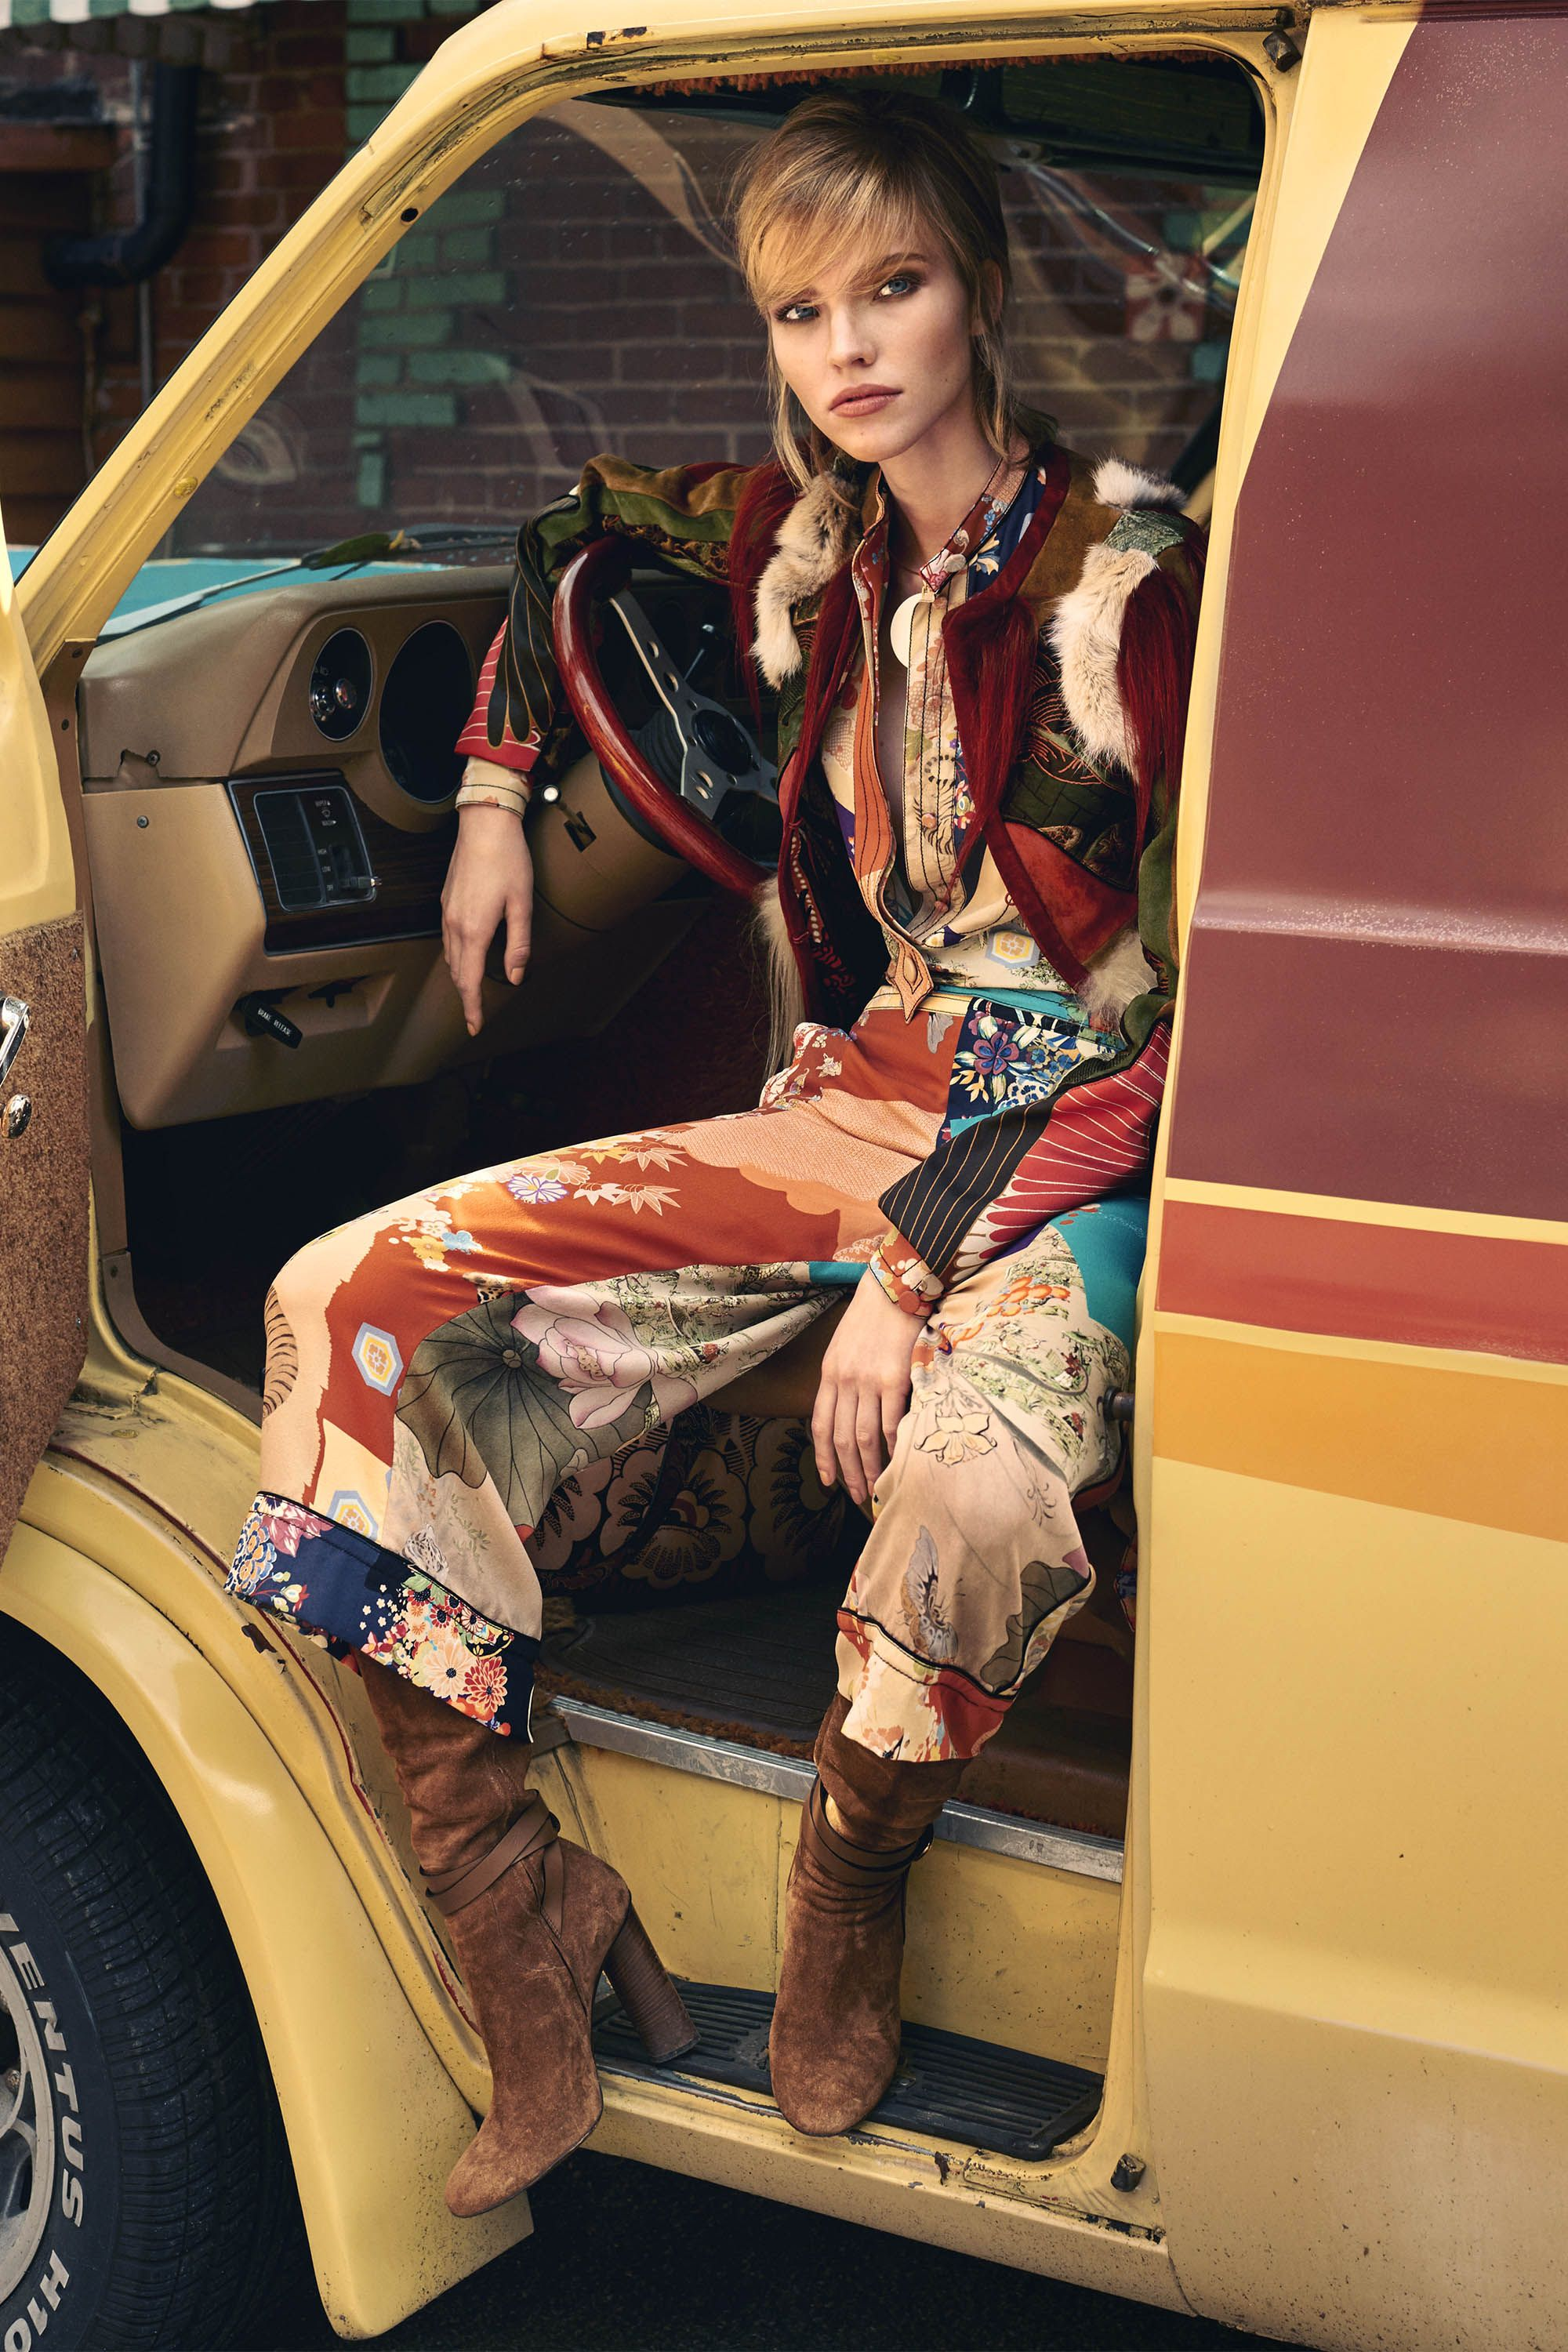 "<strong>Gucci</strong> jacket, $10,500, pants, $1,250, boots, $1,495, blouse and belt, $1,750, <a href=""http://www.gucci.com/us/category/f/women_s_ready_to_wear"">gucci.com</a>; <strong>Jill Heller Jewelry </strong>necklace, $3,300, <a href=""http://shop.harpersbazaar.com/catalogsearch/result/?q=Jill+Heller+Jewelry+"">shopBAZAAR.com</a><img src=""http://assets.hdmtools.com/images/HBZ/Shop.svg"" class=""icon shop"">; <strong>Valentini Garavani </strong>bag, $3,695, 212-772-696."